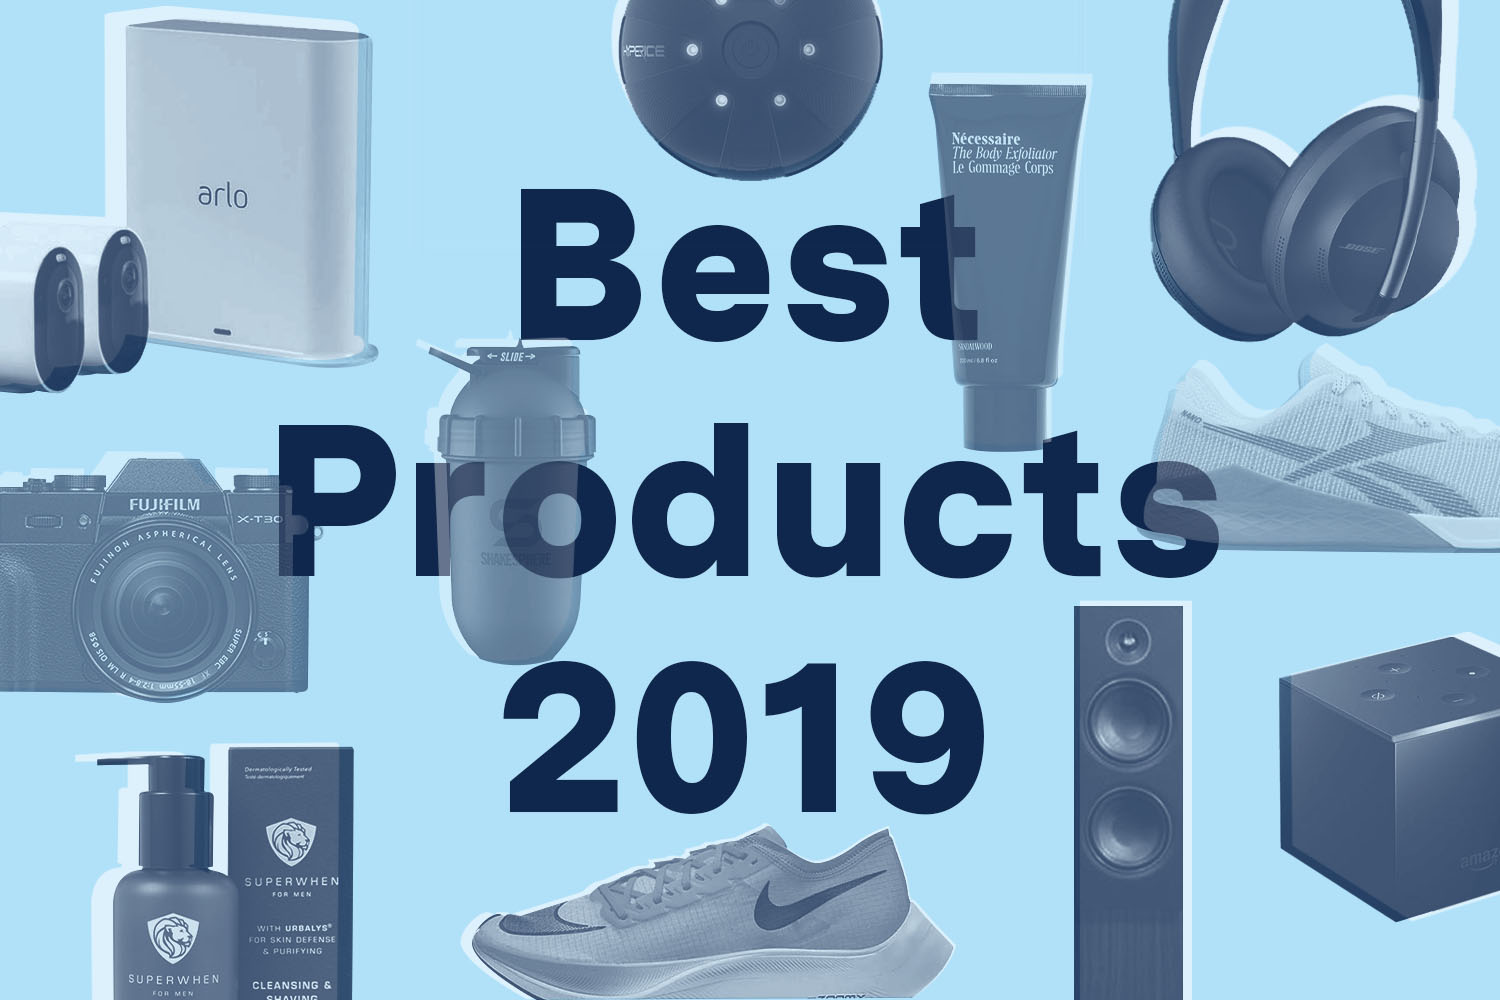 The Best New Products of 2019